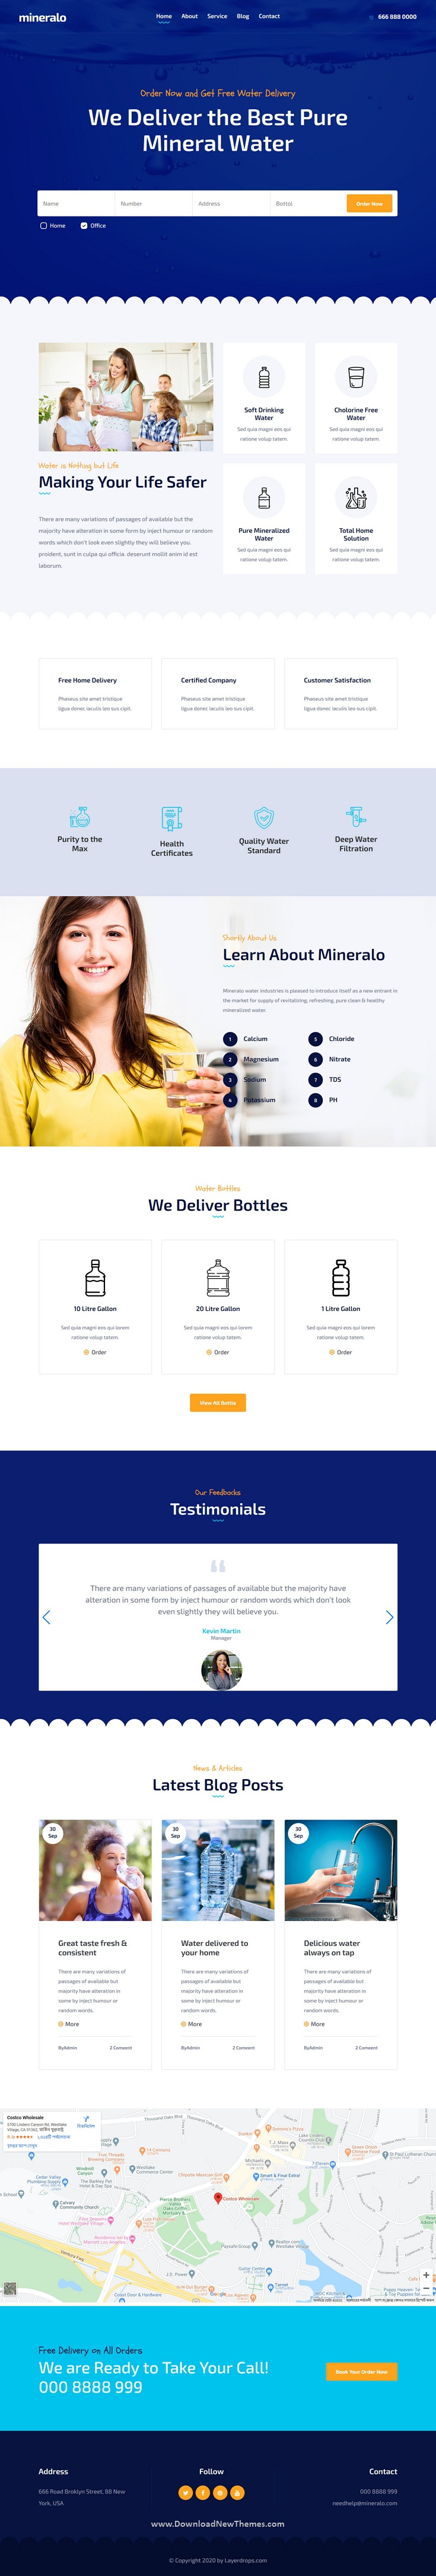 Bottled Water Delivery Service Website Template